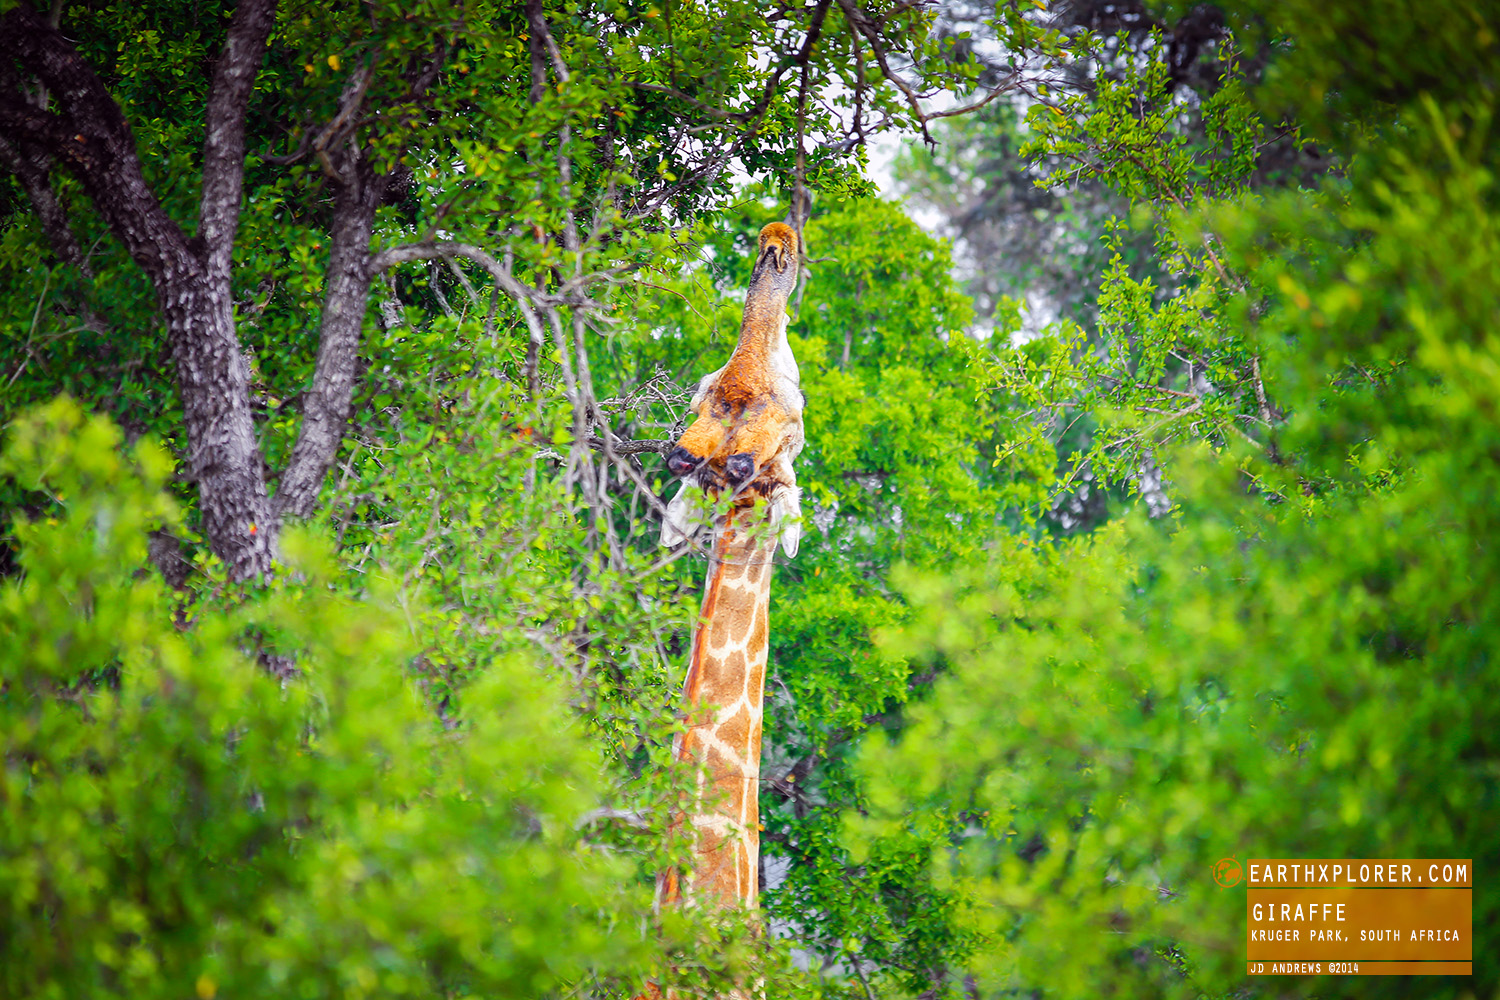 Giraffes are the world's tallest mammals.